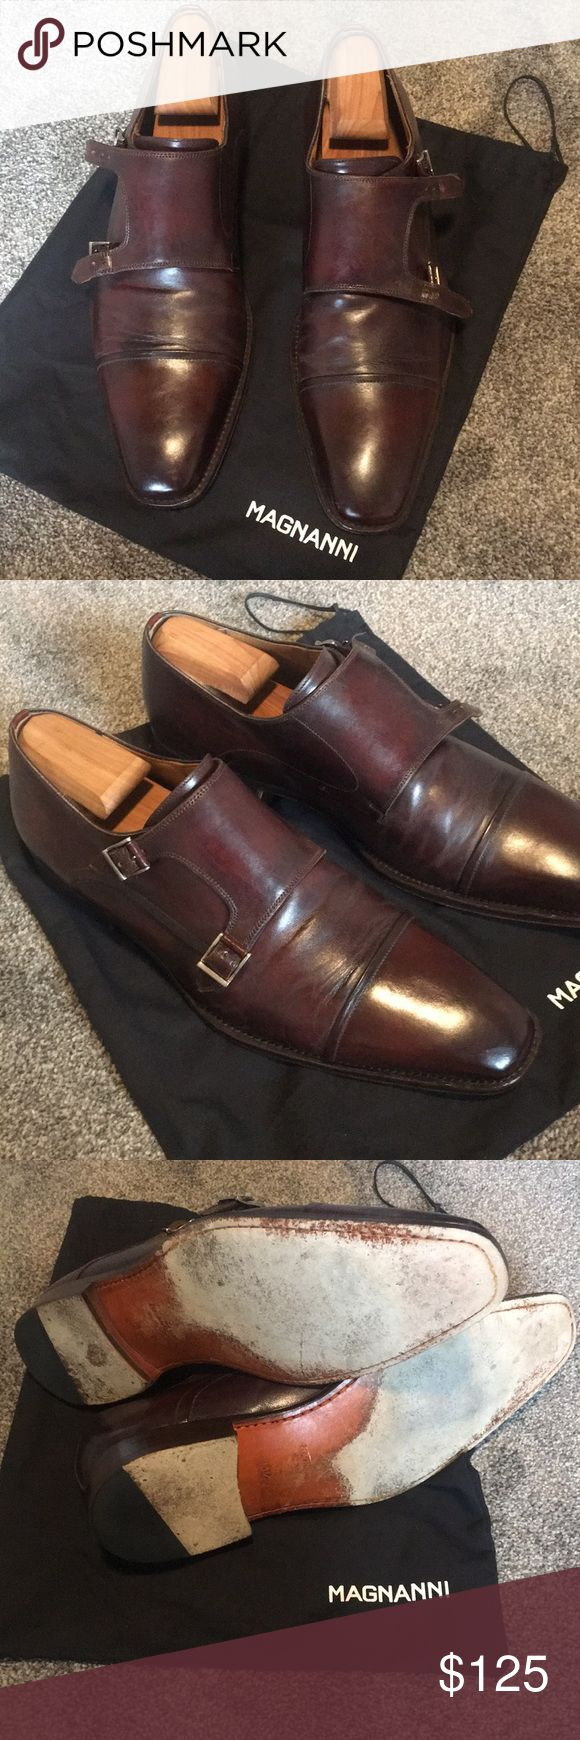 Magnanni double monk strap Good condition magnanni double monk strap in tobacco....